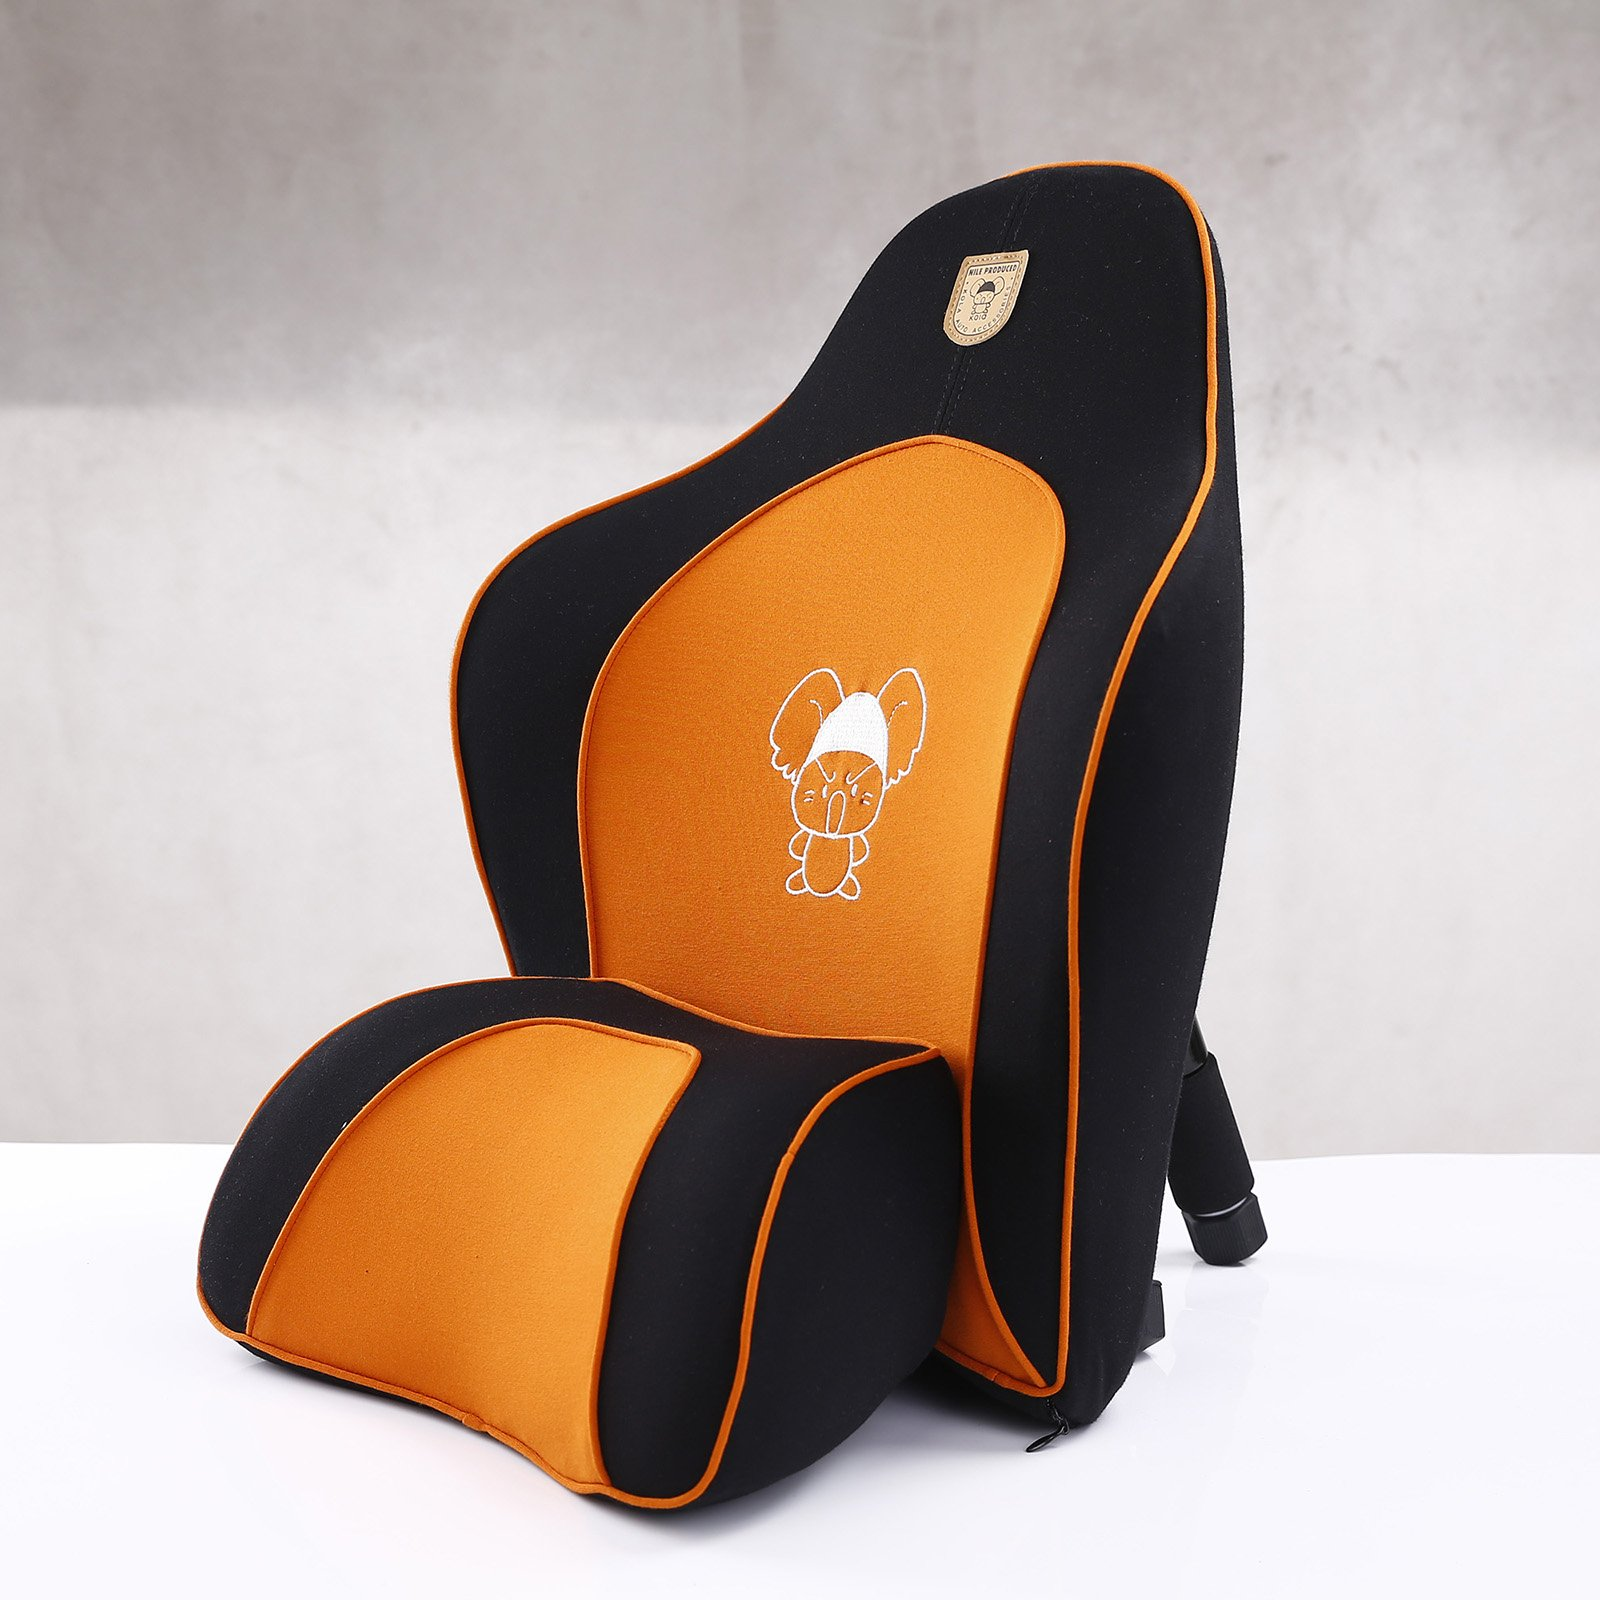 MeiBoAll Memory Foam Car Lumbar Cushion and Car Neck Pillow for Travel and Car Chair Relieve Back and Neck Pain Orange